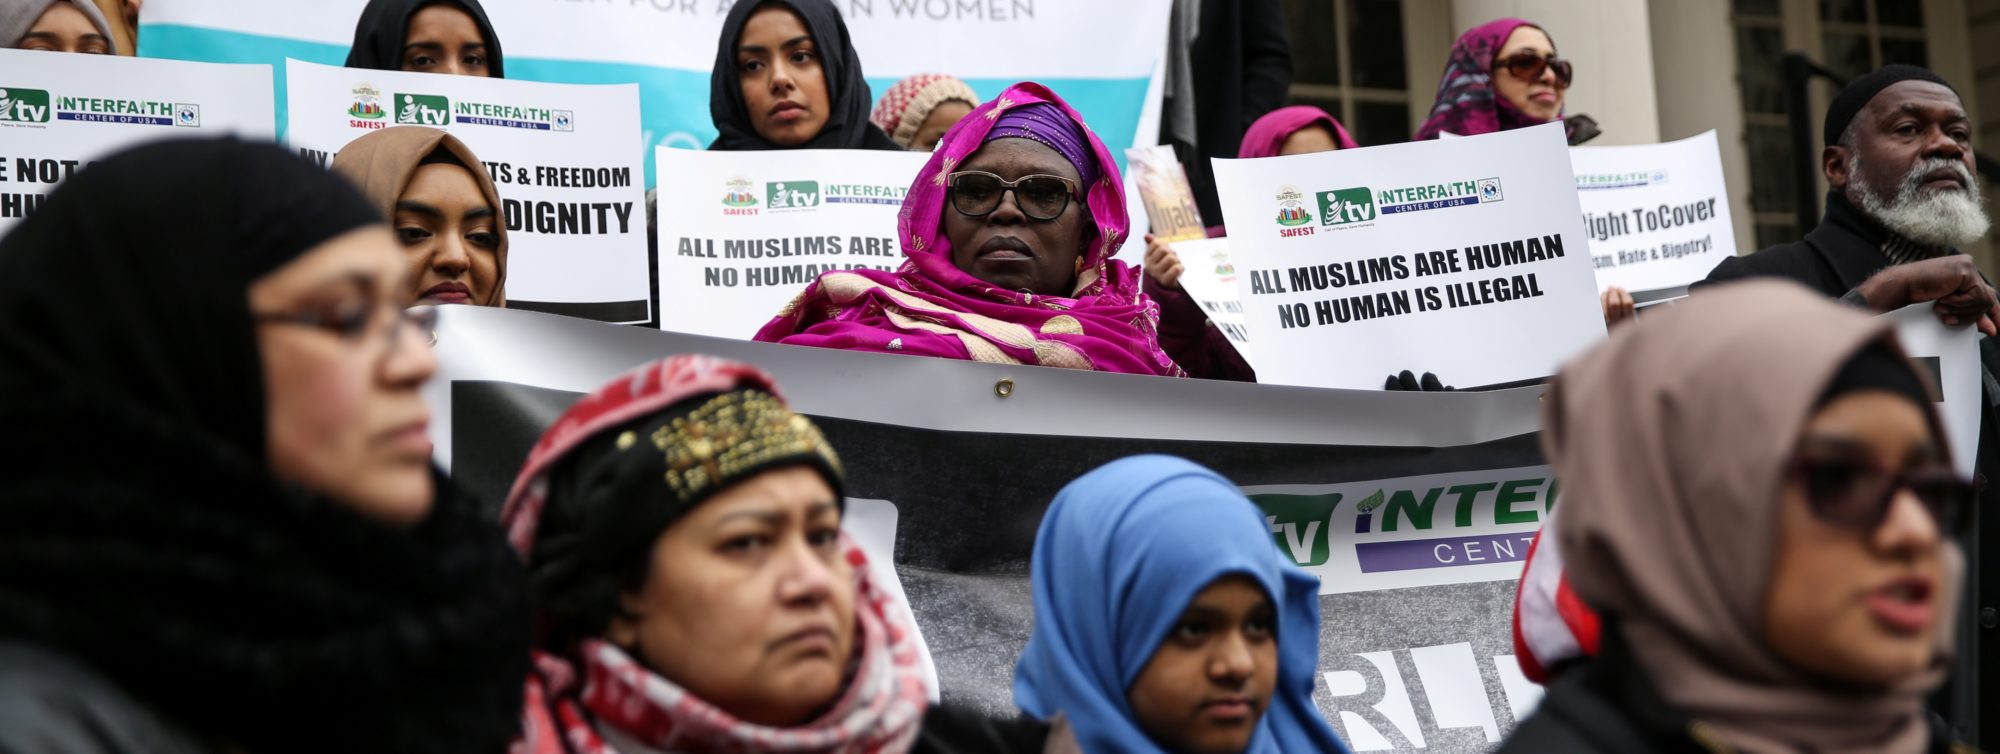 Muslim American women take part in a World Hijab Day rally held in front of New York City Hall in Manhattan, New York, February 1, 2018. REUTERS/Amr Alfiky